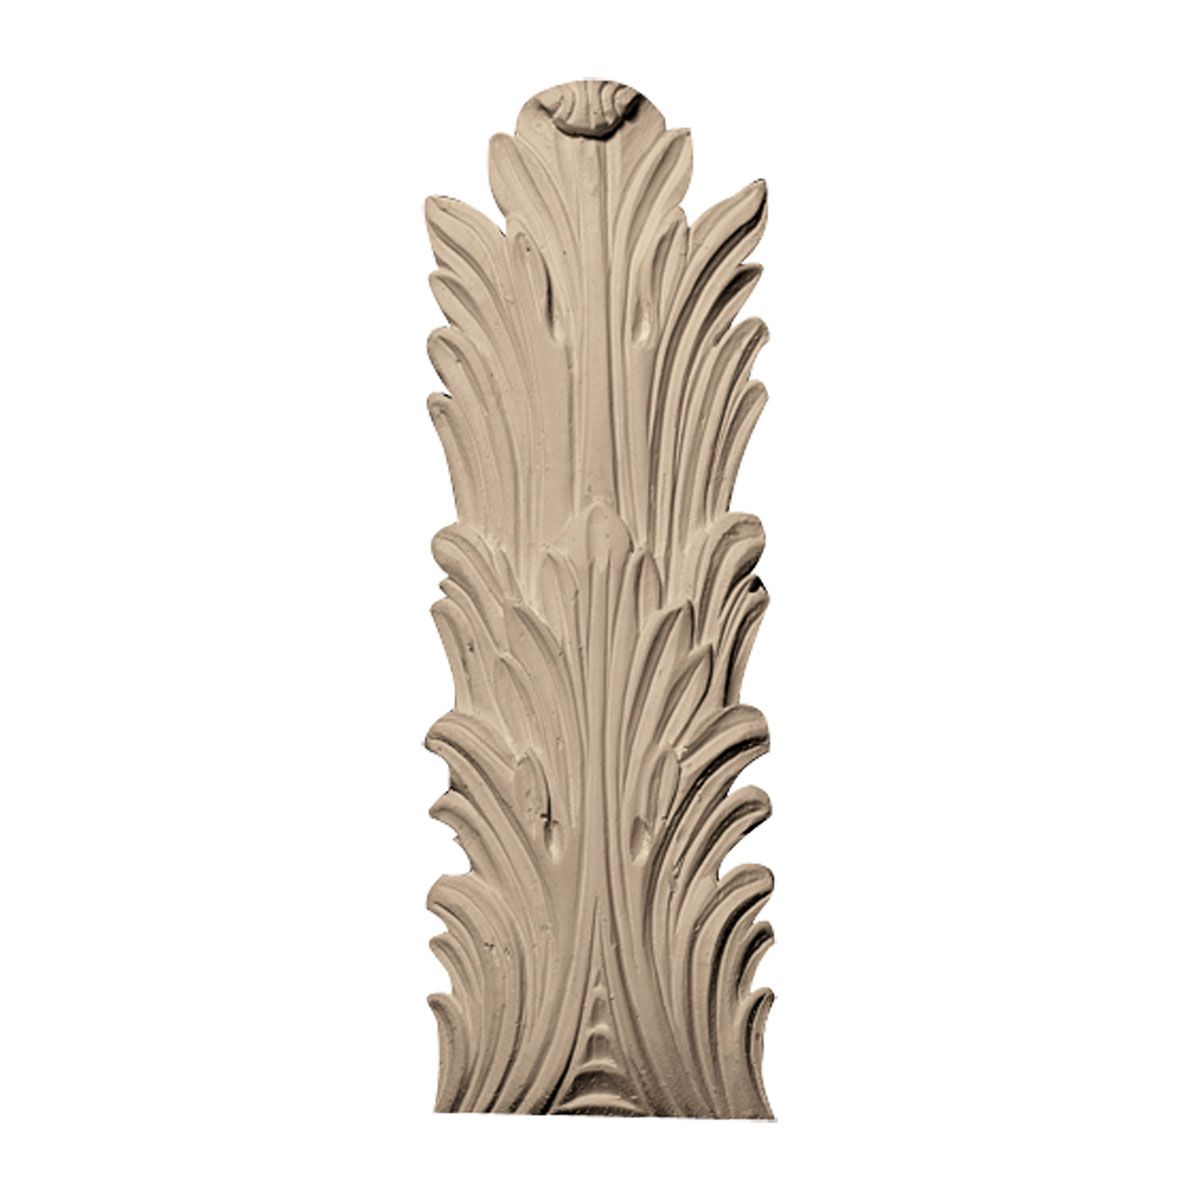 Approx 4 3 4 Inch X 13 3 4 Inch X 1 2 Inch Leaf Wood Appliques Molding And Millwork Wood Carving